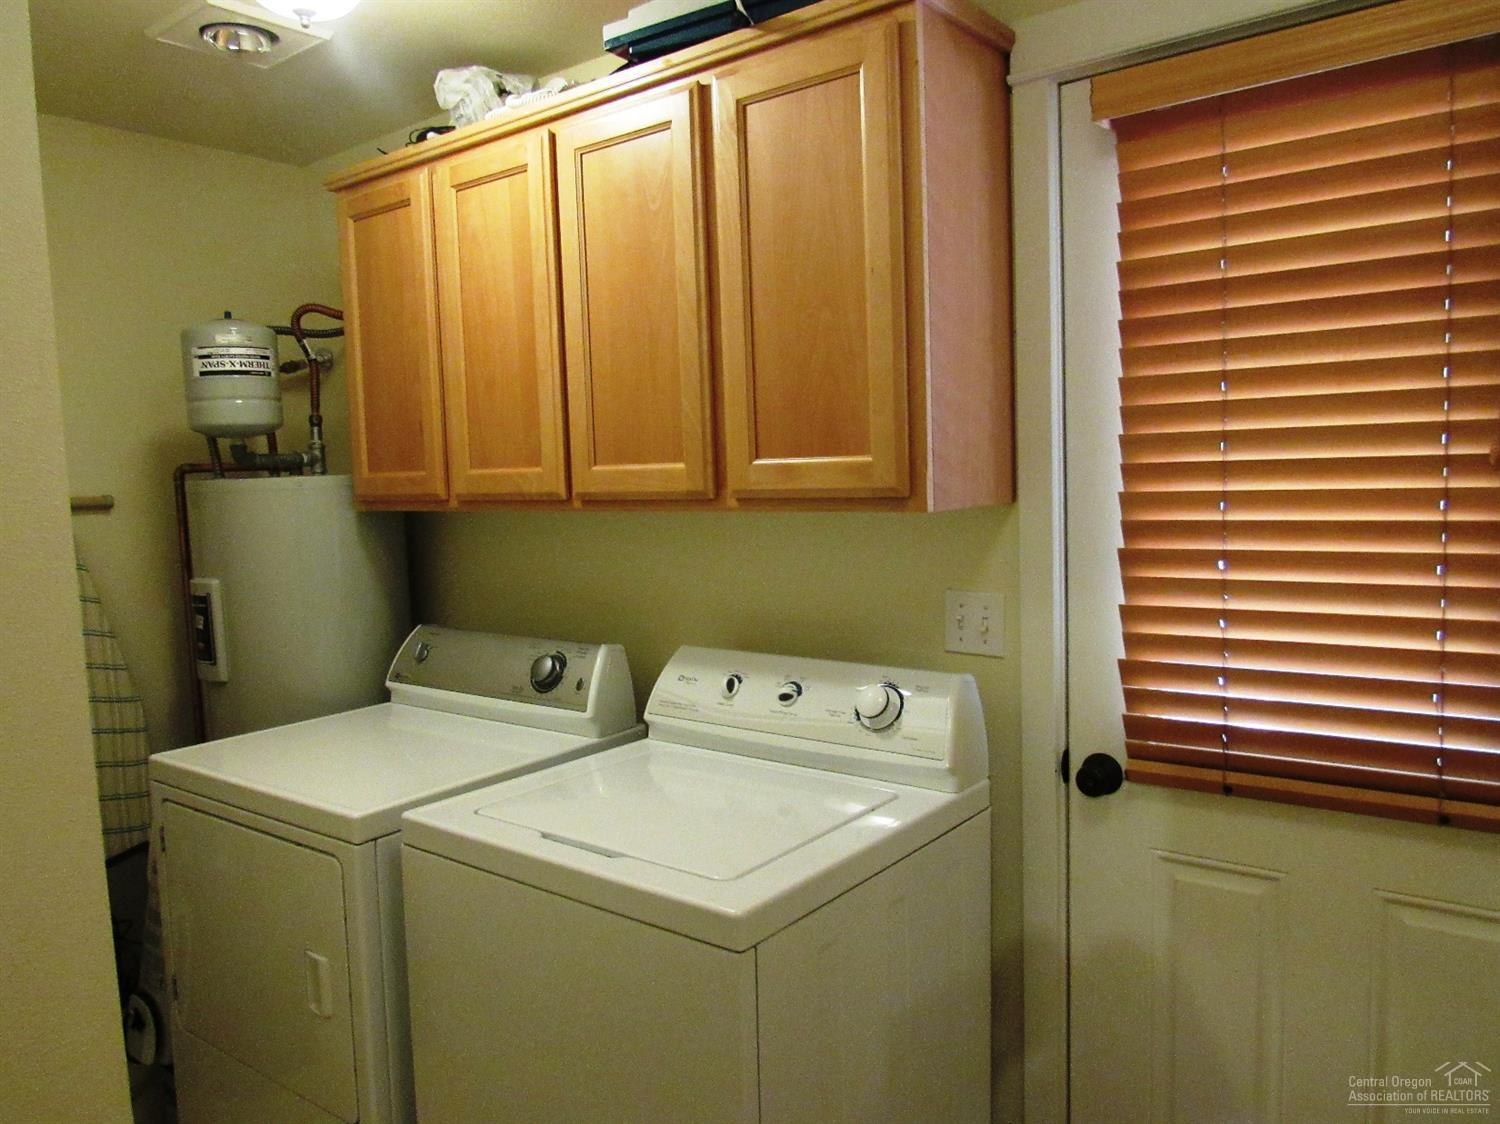 Separate utility area for washer/dryer with door t